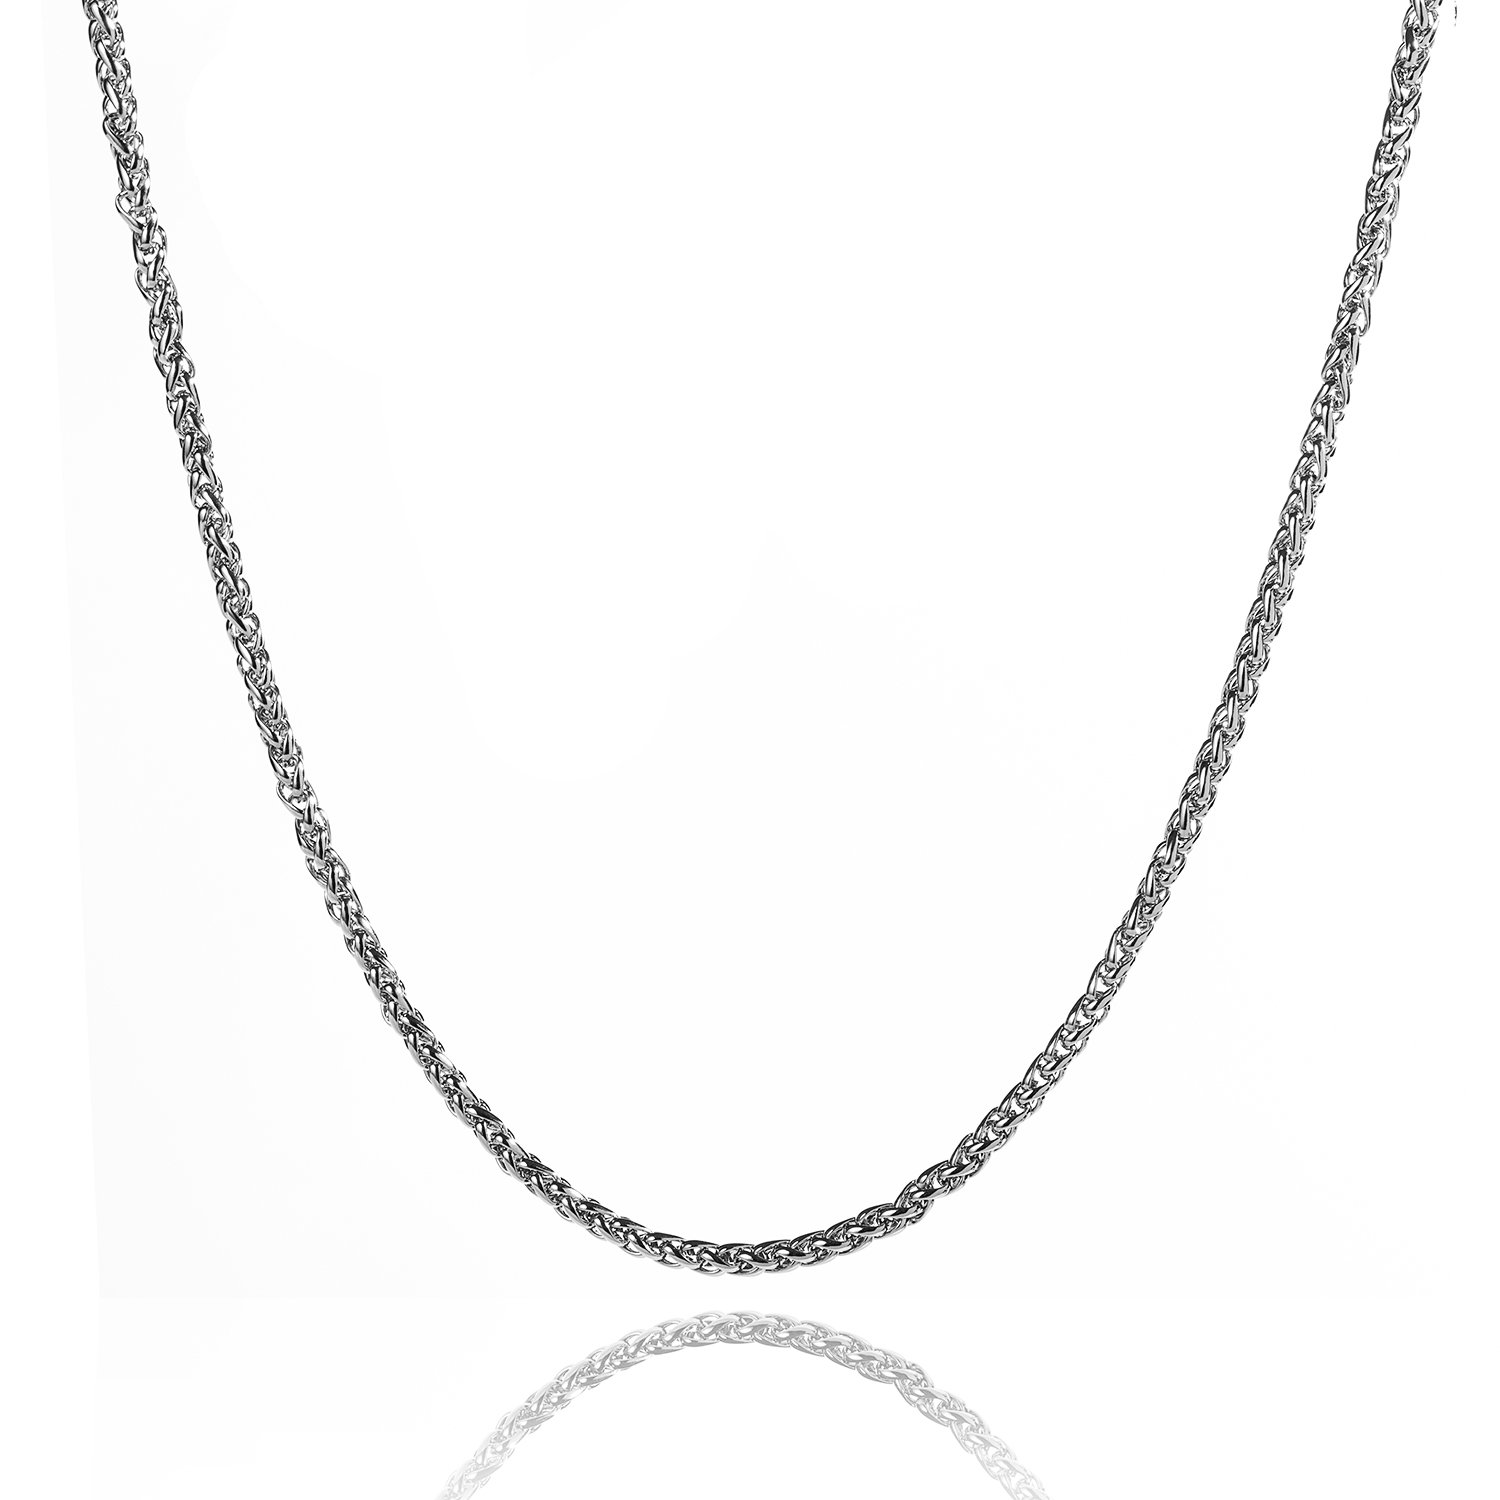 Youlixuess Style 4mm Titanium Stainless Steel Womens Mens Silver Wheat Chain Necklace 16-30